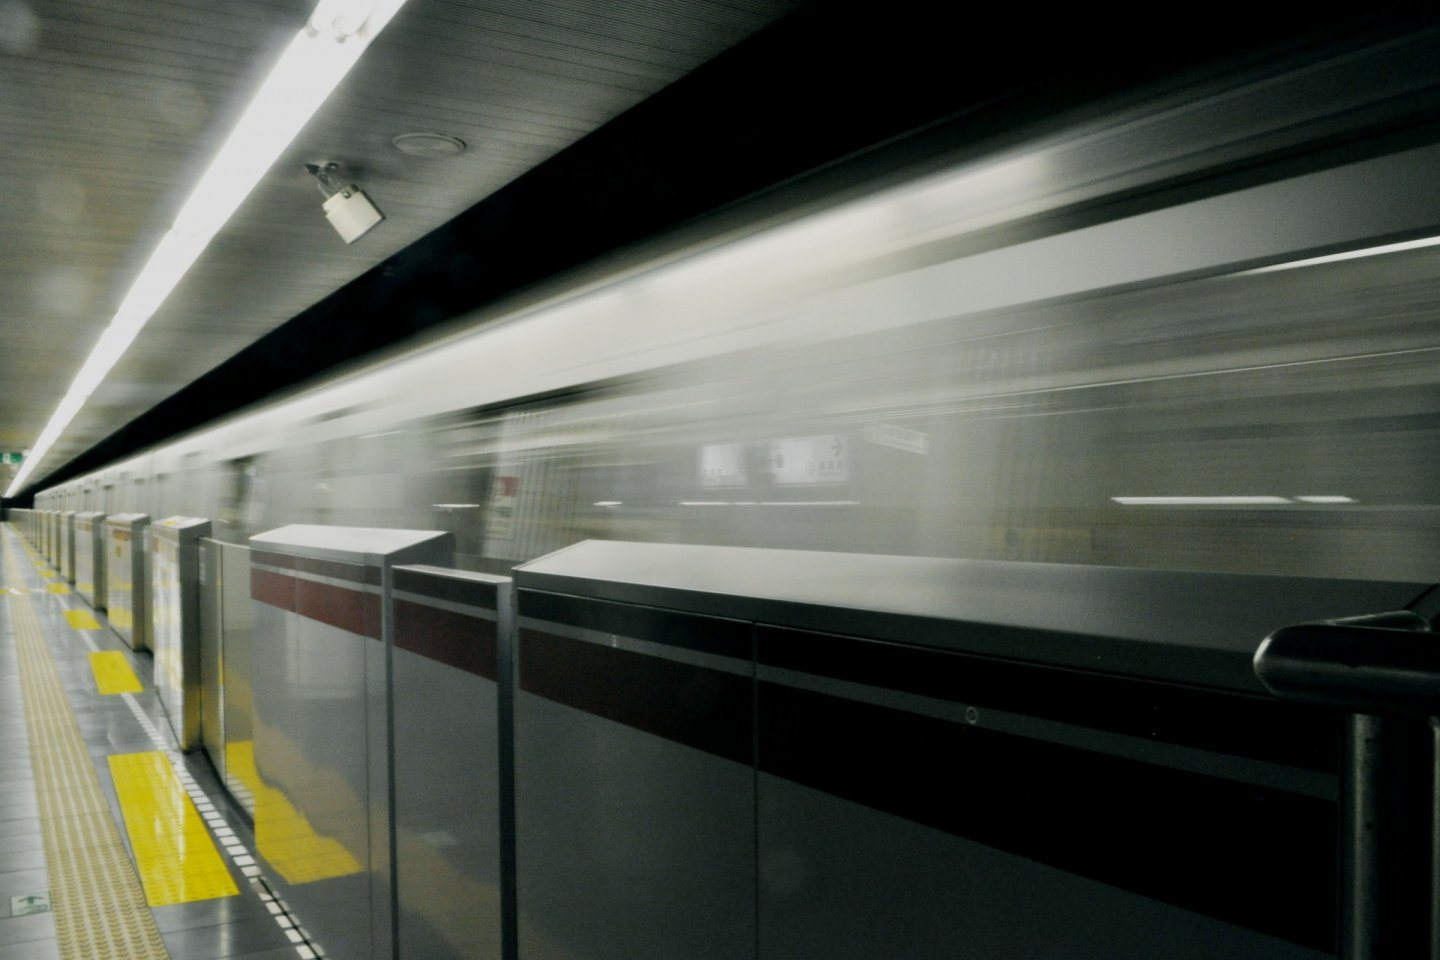 A train passing by on the Namboku line